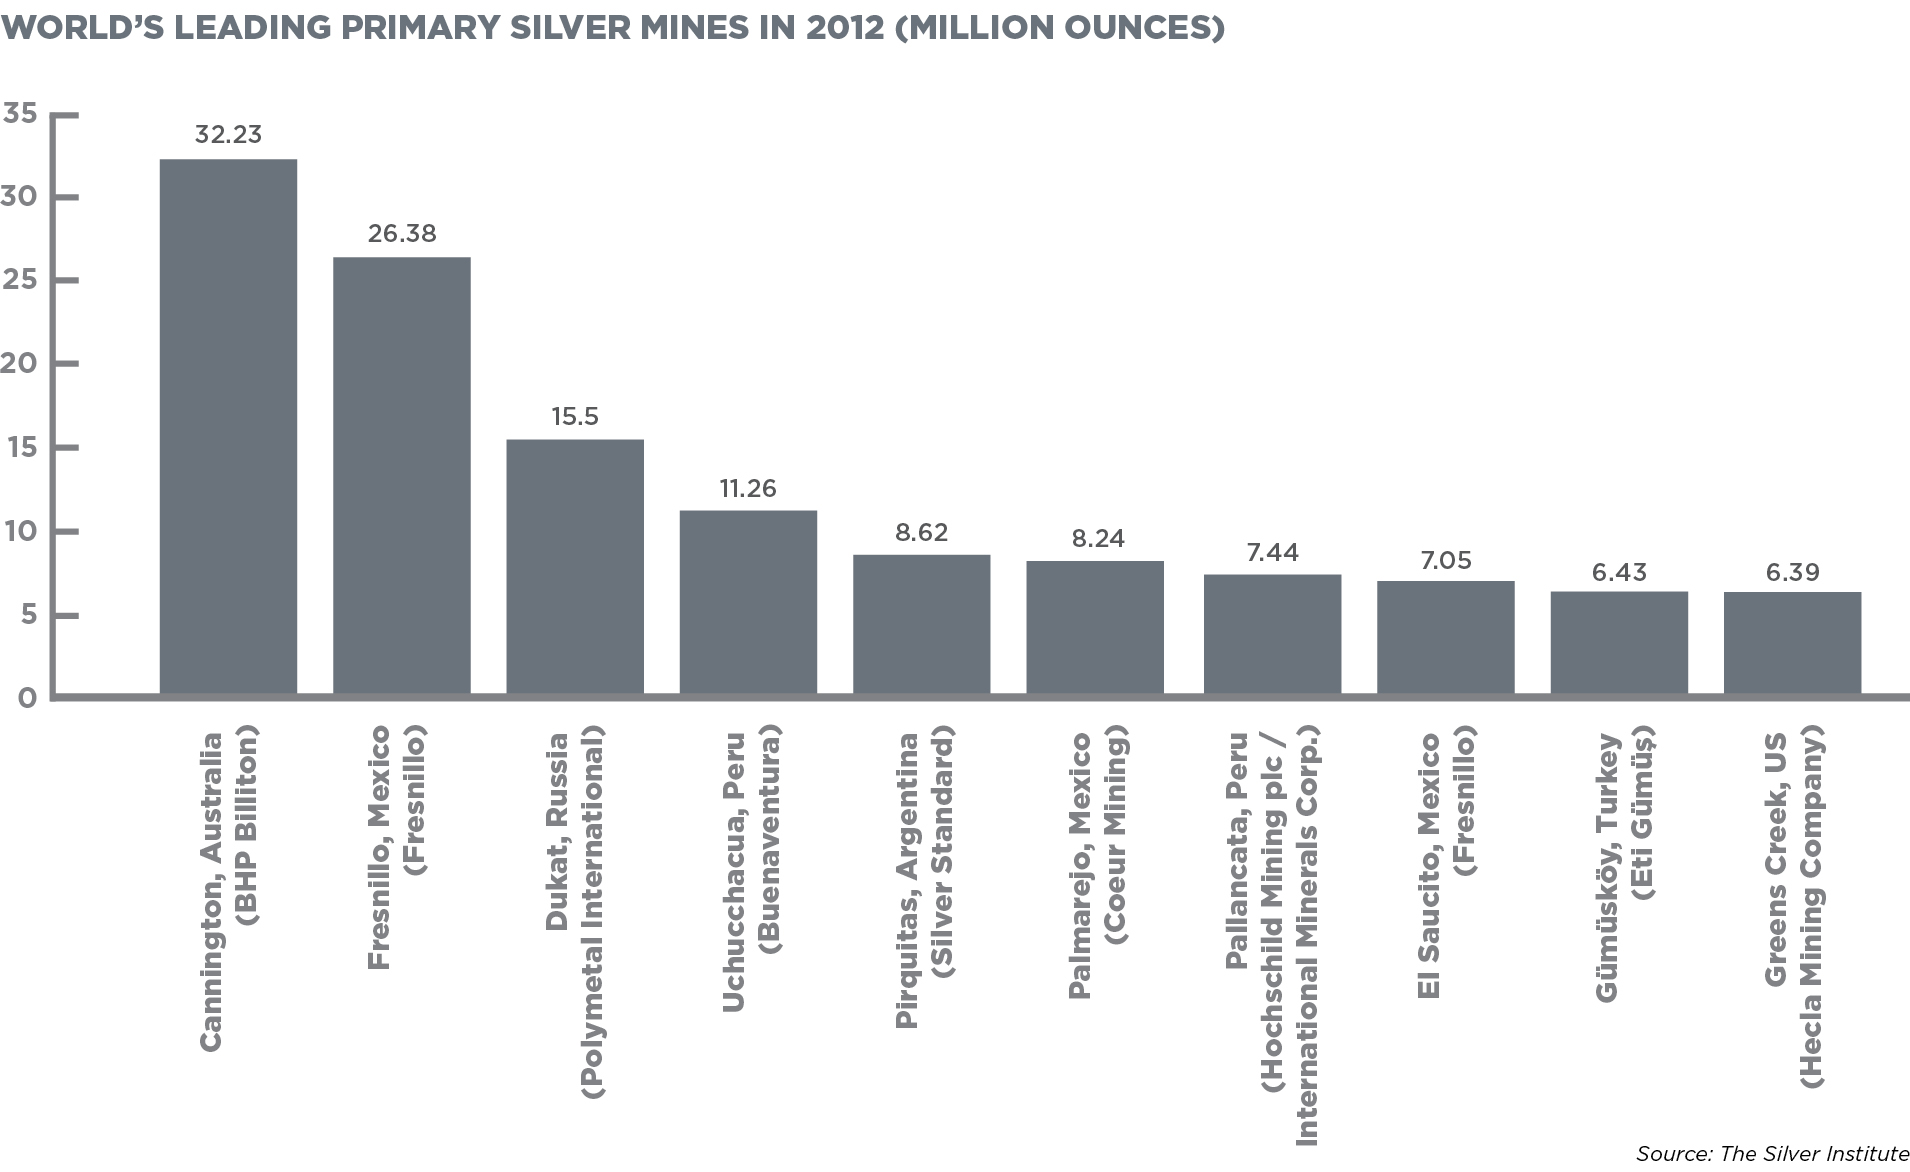 WORLD'S LEADING PRIMARY SILVER MINES IN 2012 (MILLION OUNCES)